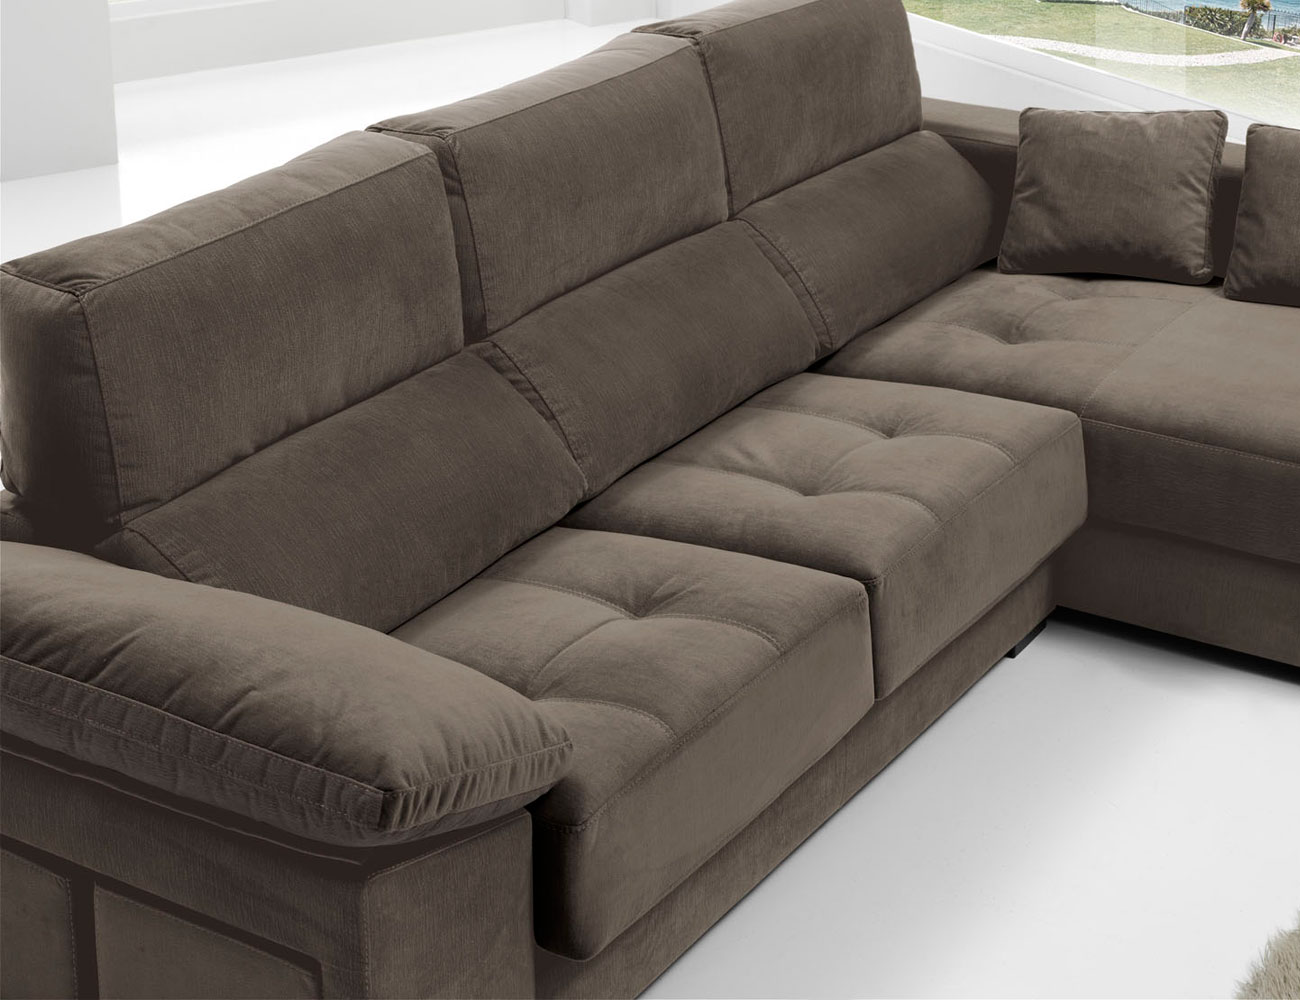 Sofa chaiselongue anti manchas bering pouf 250